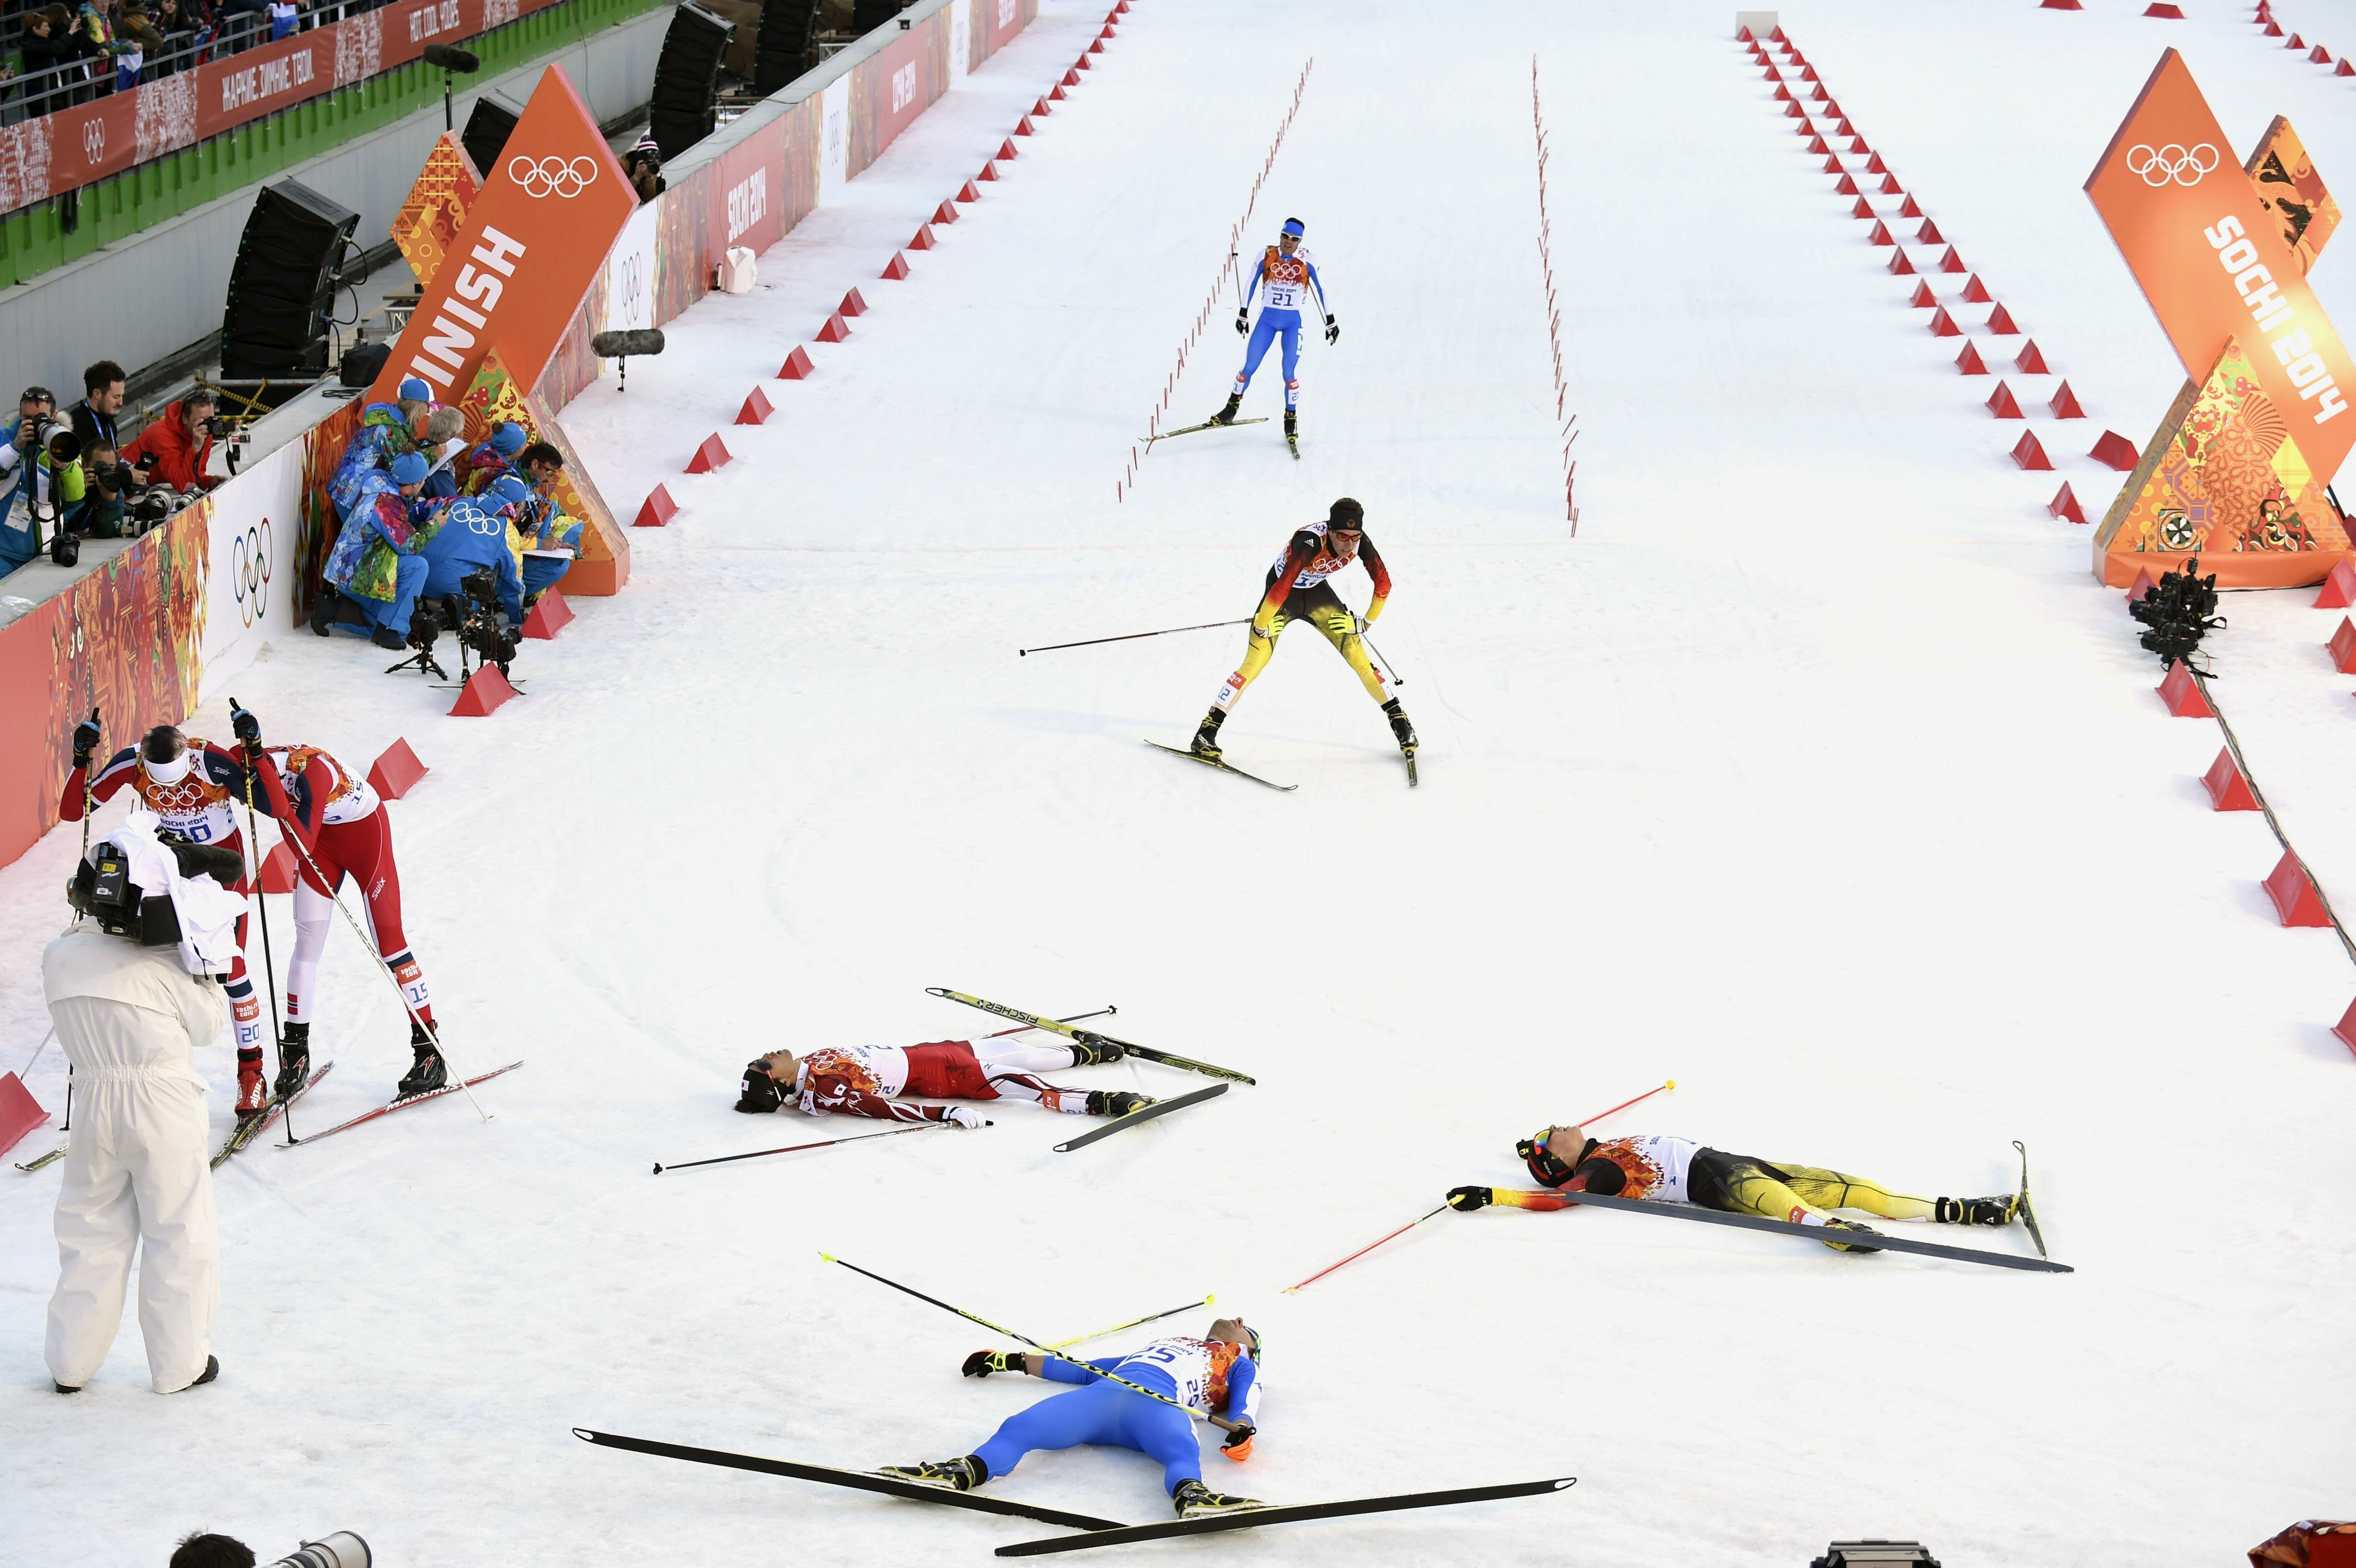 Gold medalist Germany's Eric Frenzel, silver medalist Japan's Akito Watabe and fourth place Italy's Alessandro Pittin lie on the snow at the finish line of the Nordic Combined Individual NH / 10 km Cross-Country.